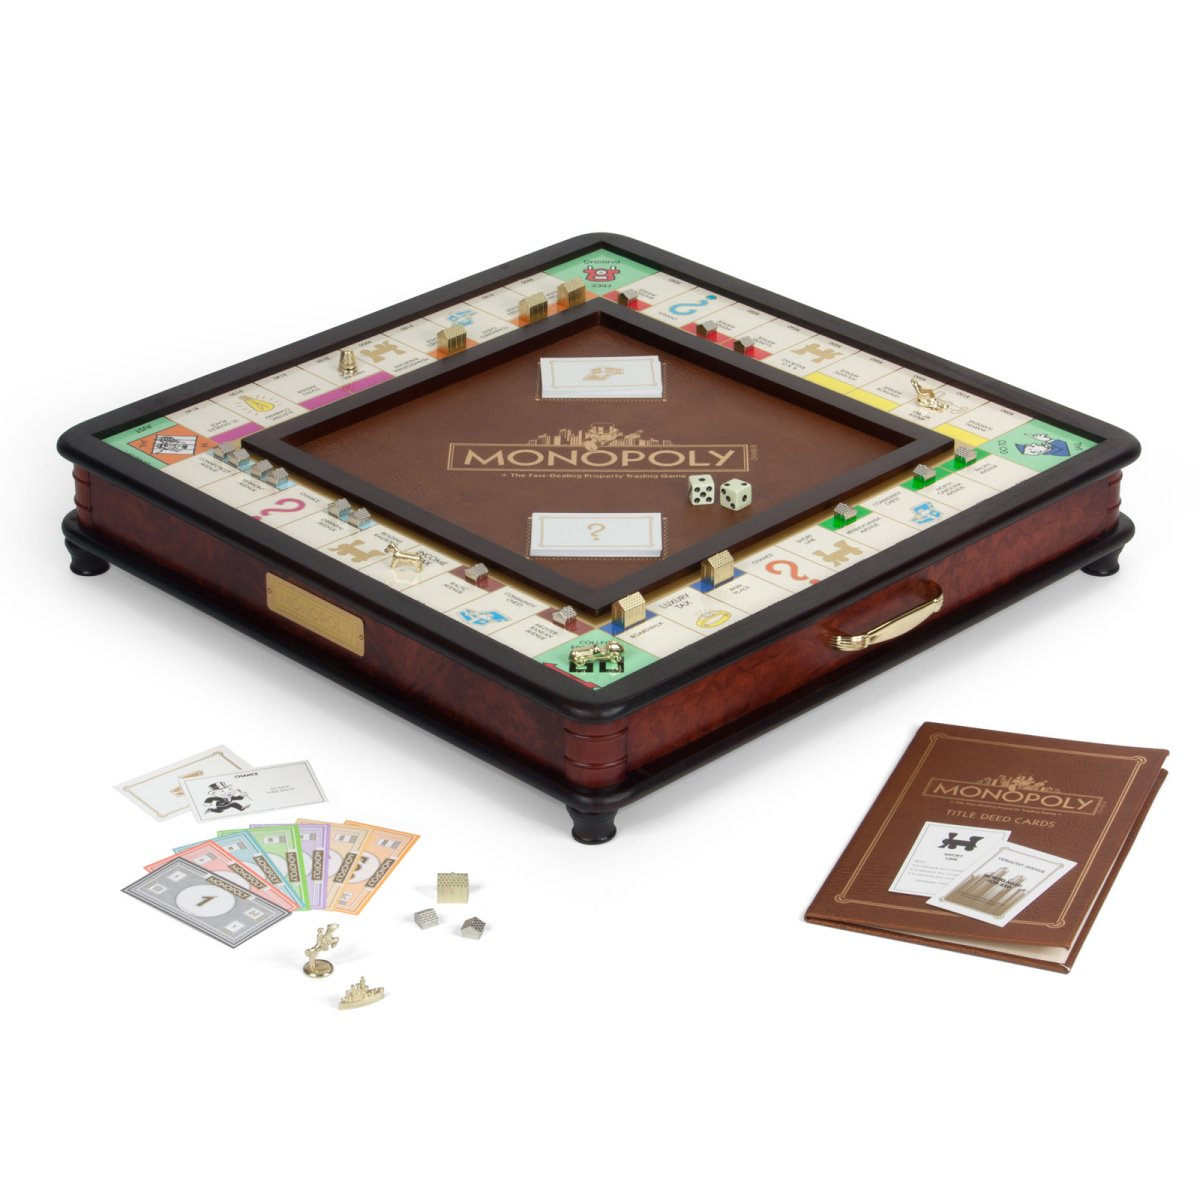 Monopoly Luxury Edition is an